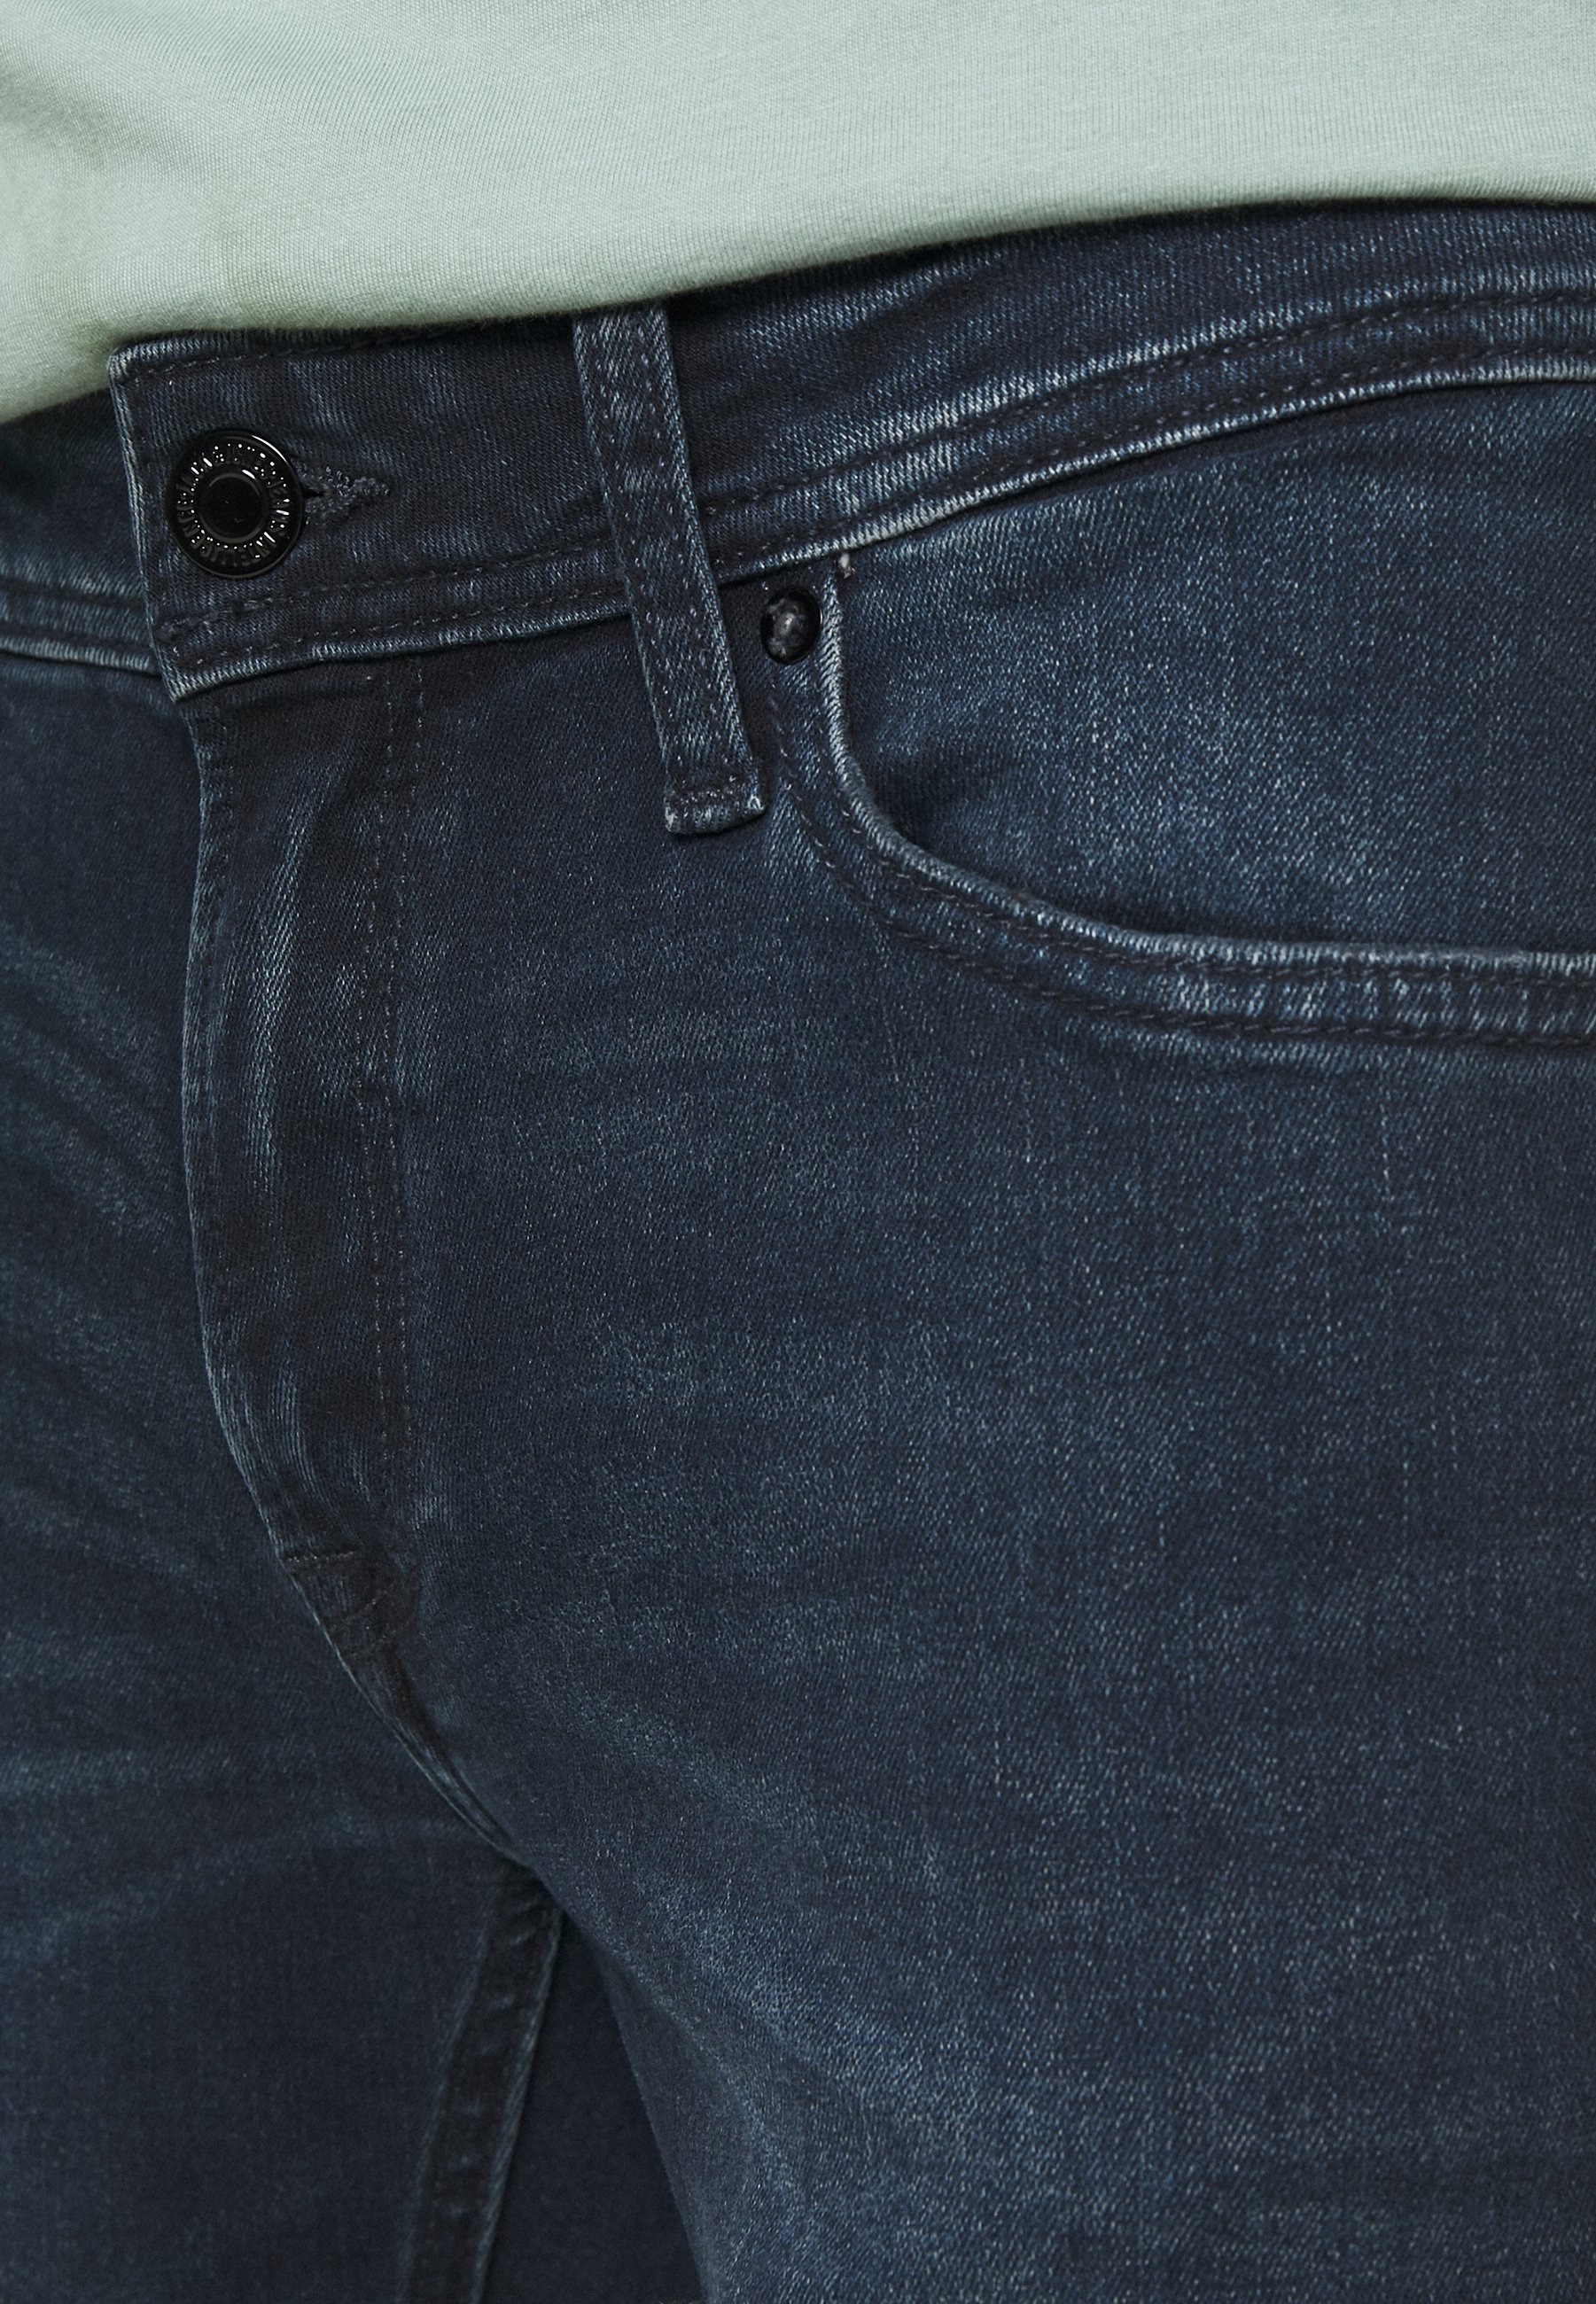 Recommander Pas Cher Vêtements homme Jack & Jones JJILIAM JJORIGINAL  Jean slim blue denim KAy8gP69